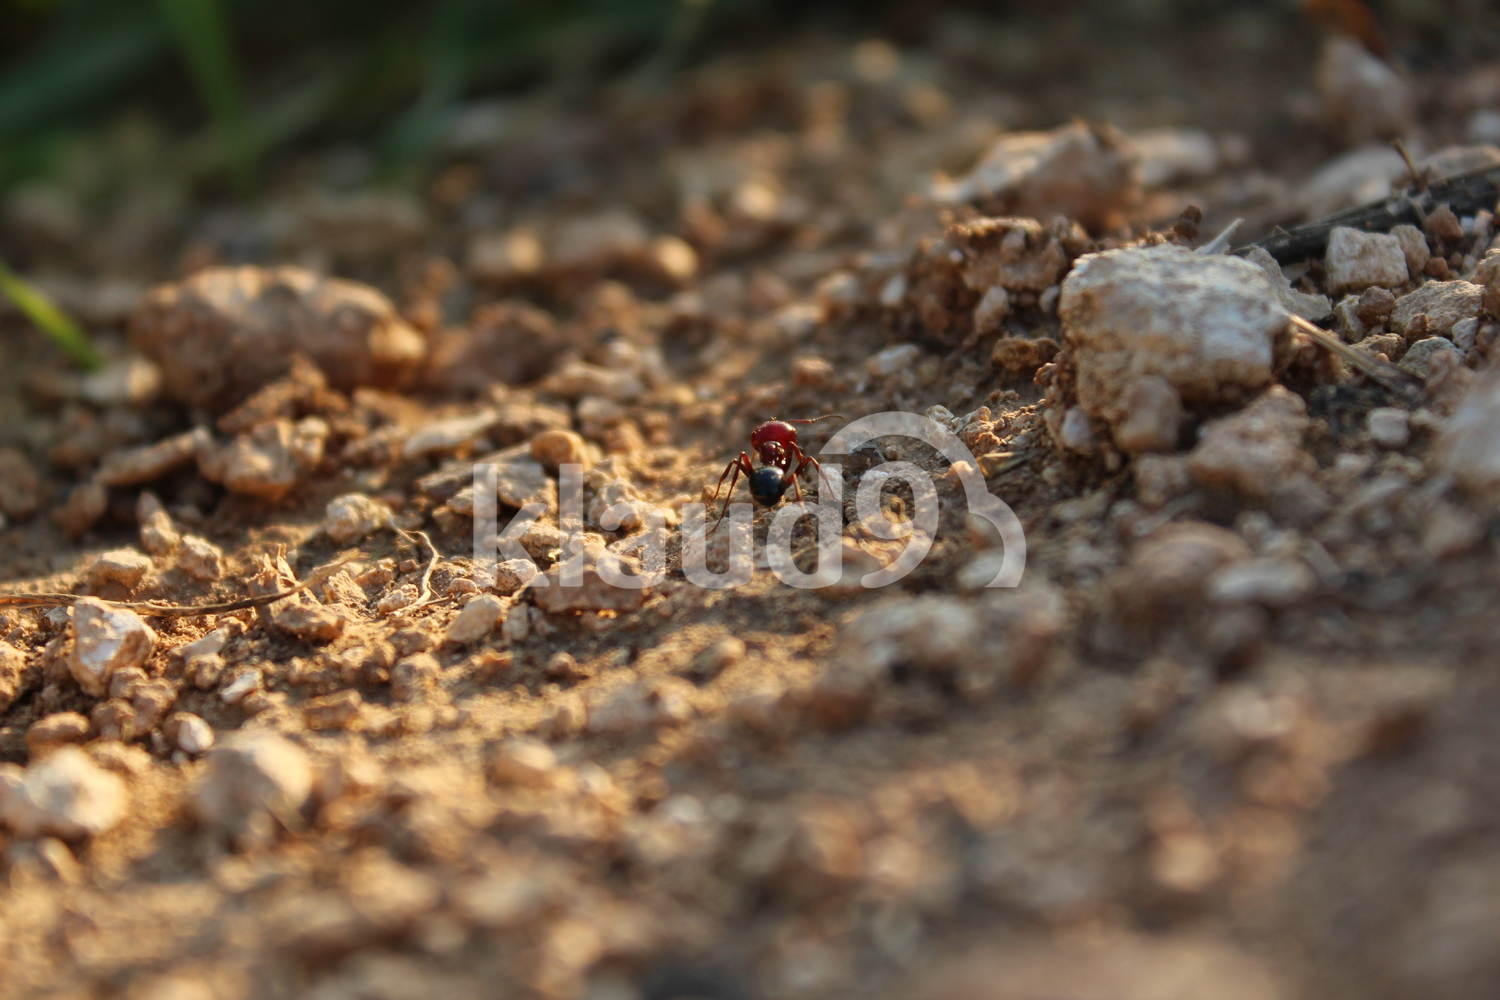 An ant in focus